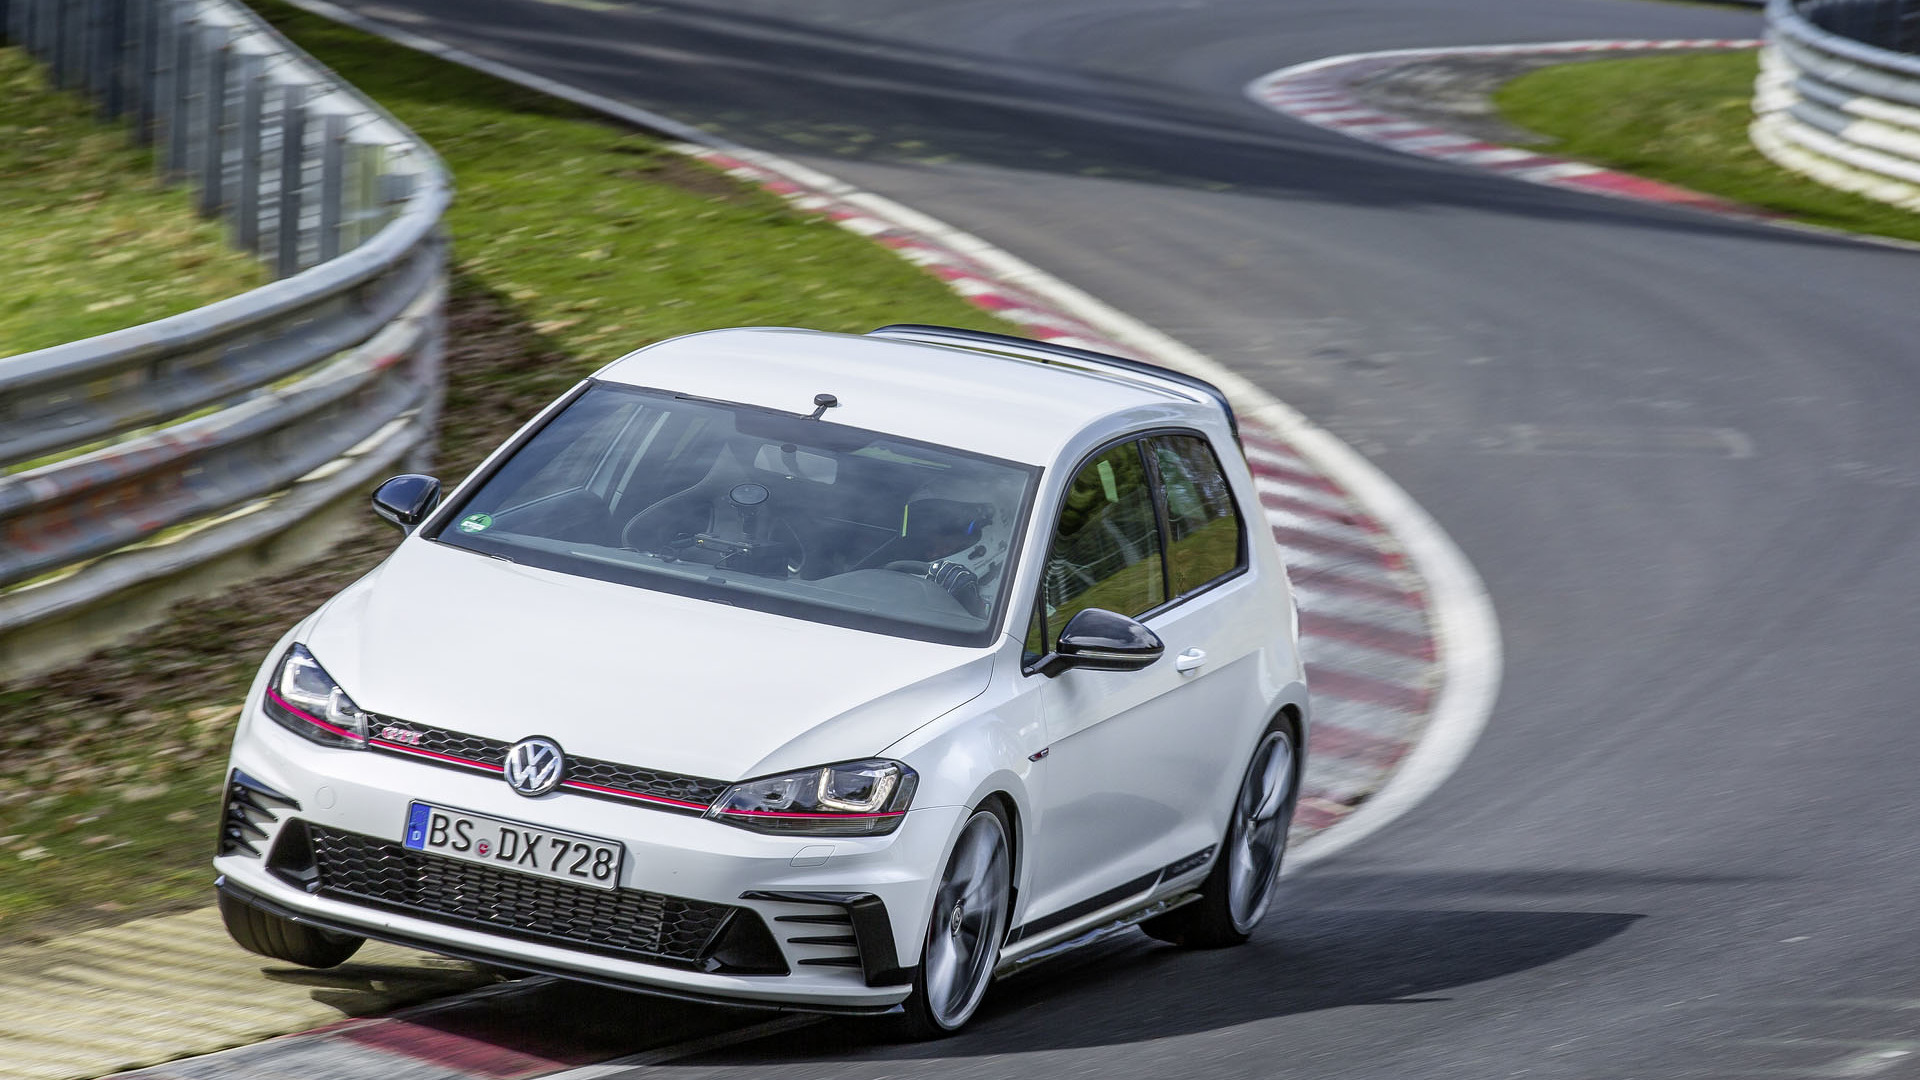 Vw Golf Gti Clubsport S Revealed Sets New Nurburgring Fwd